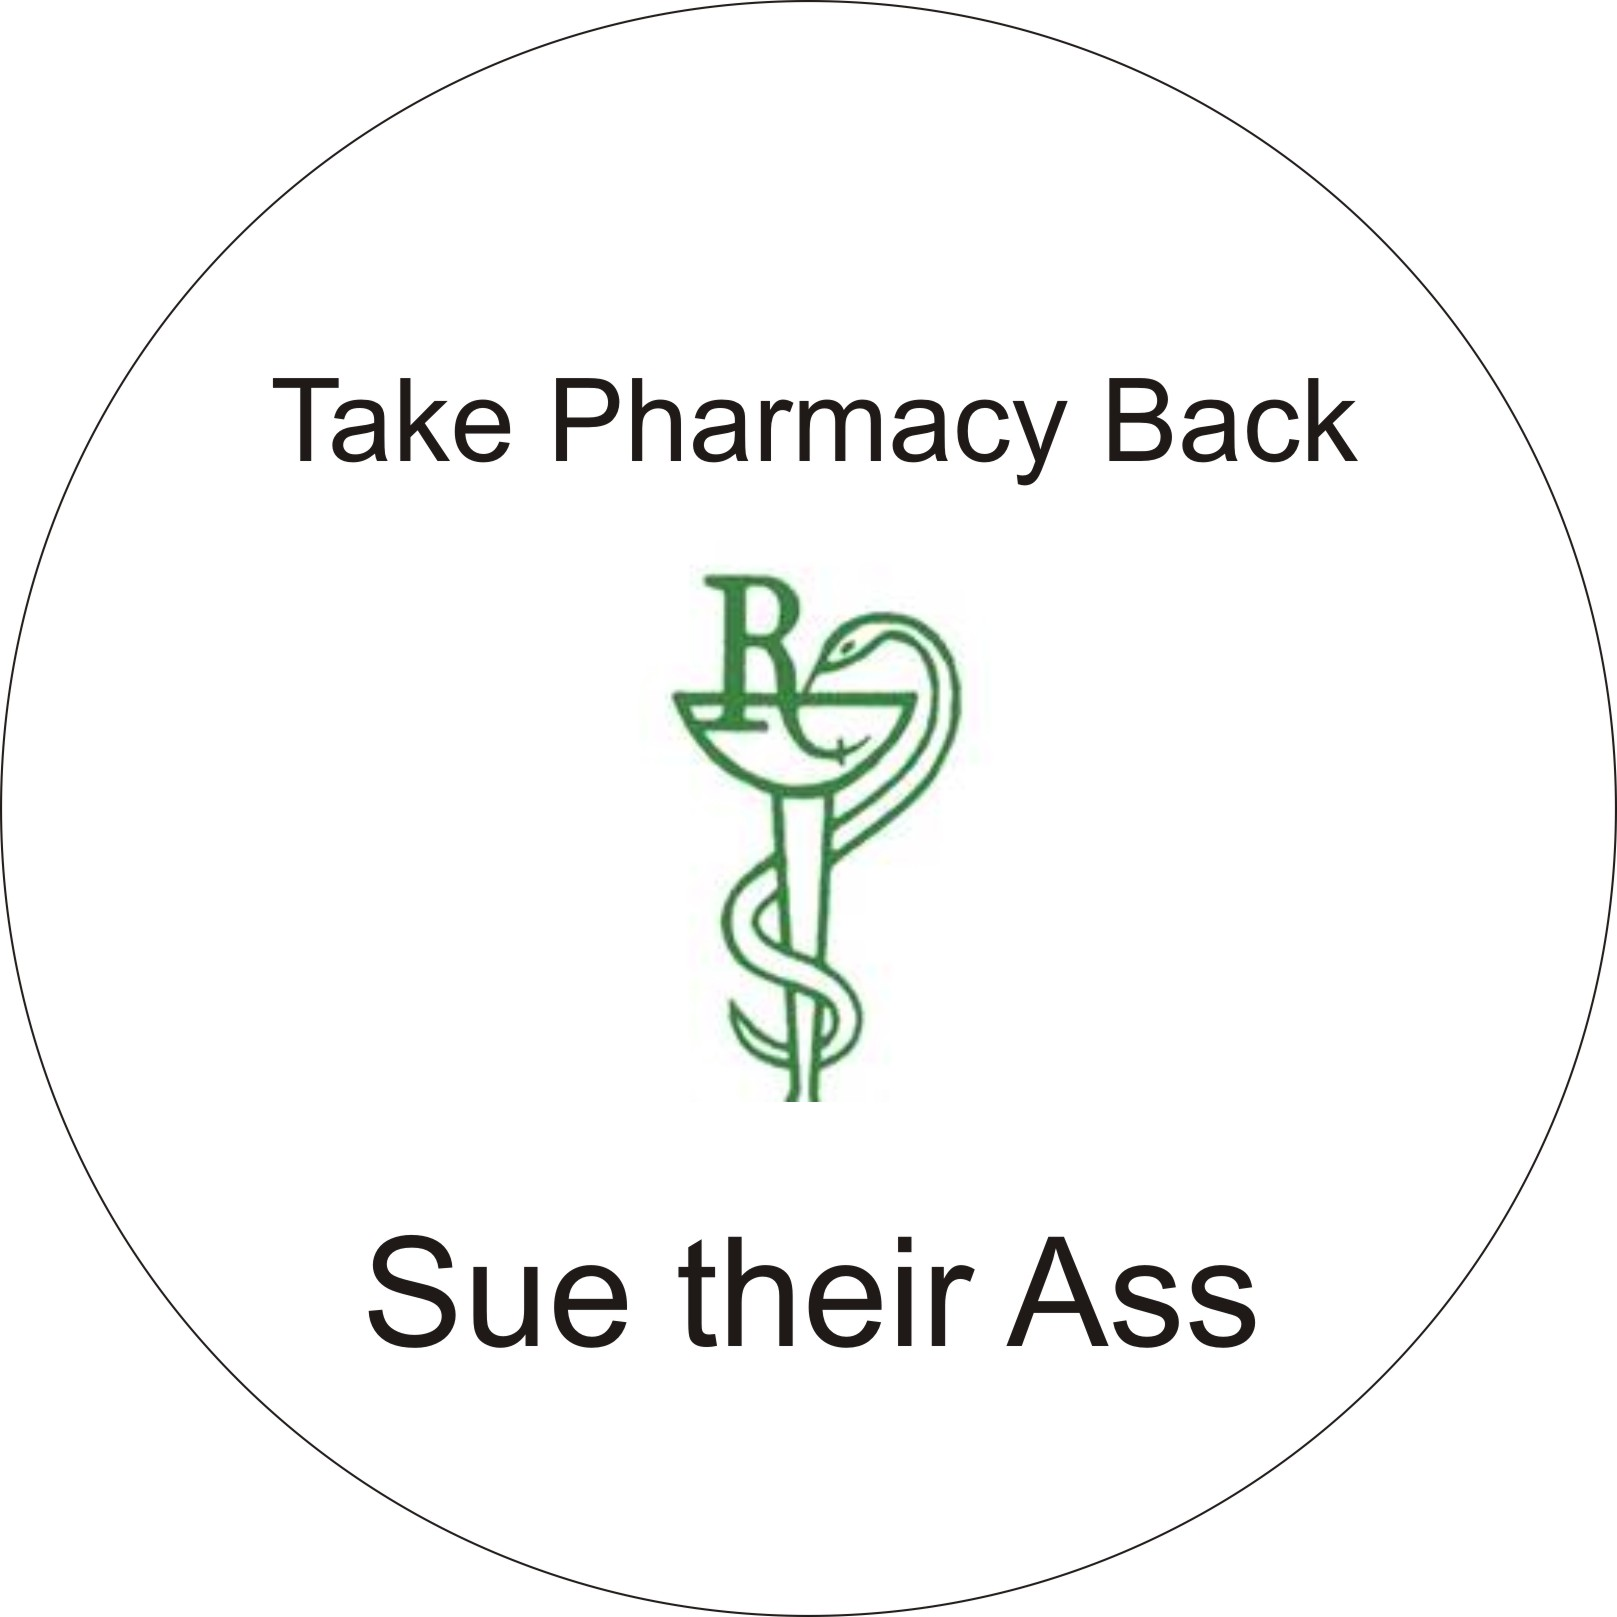 Former CVS tech comes forward about lying to pts | PHARMACIST STEVE